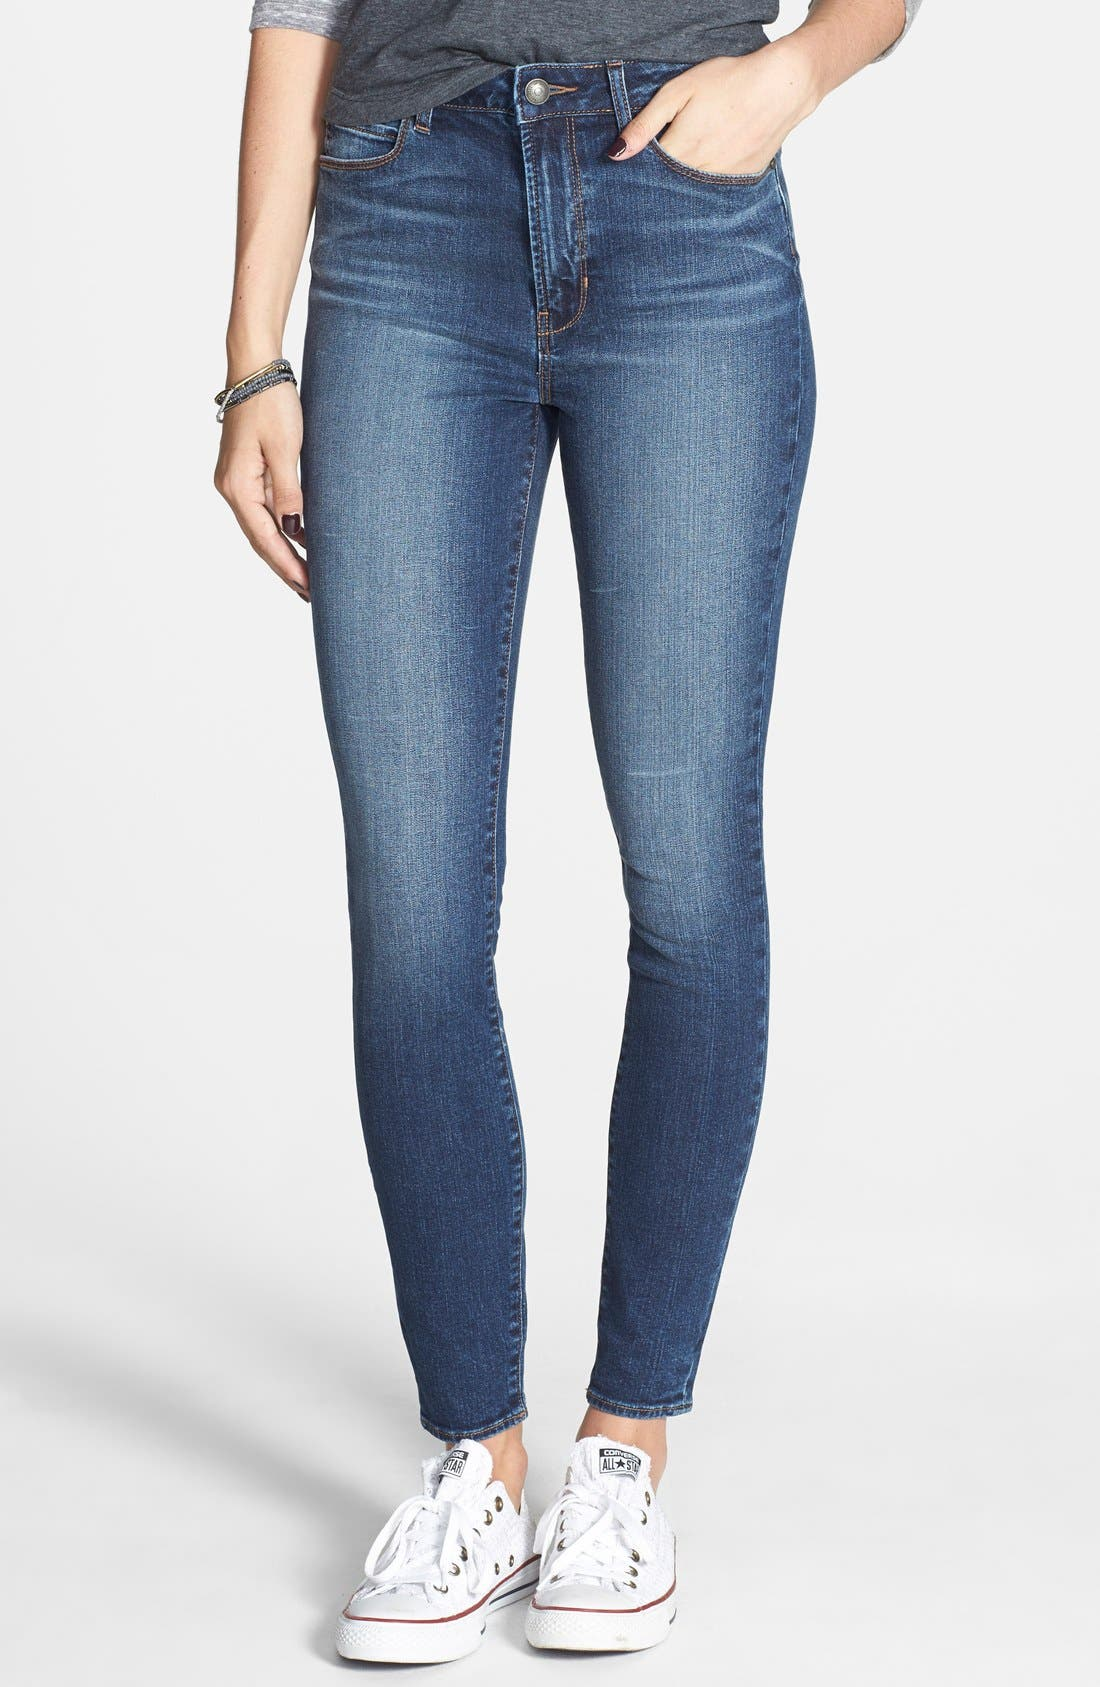 Alternate Image 1 Selected - Articles of Society 'Halley' High Waist Skinny Jeans (Twilight Wash)